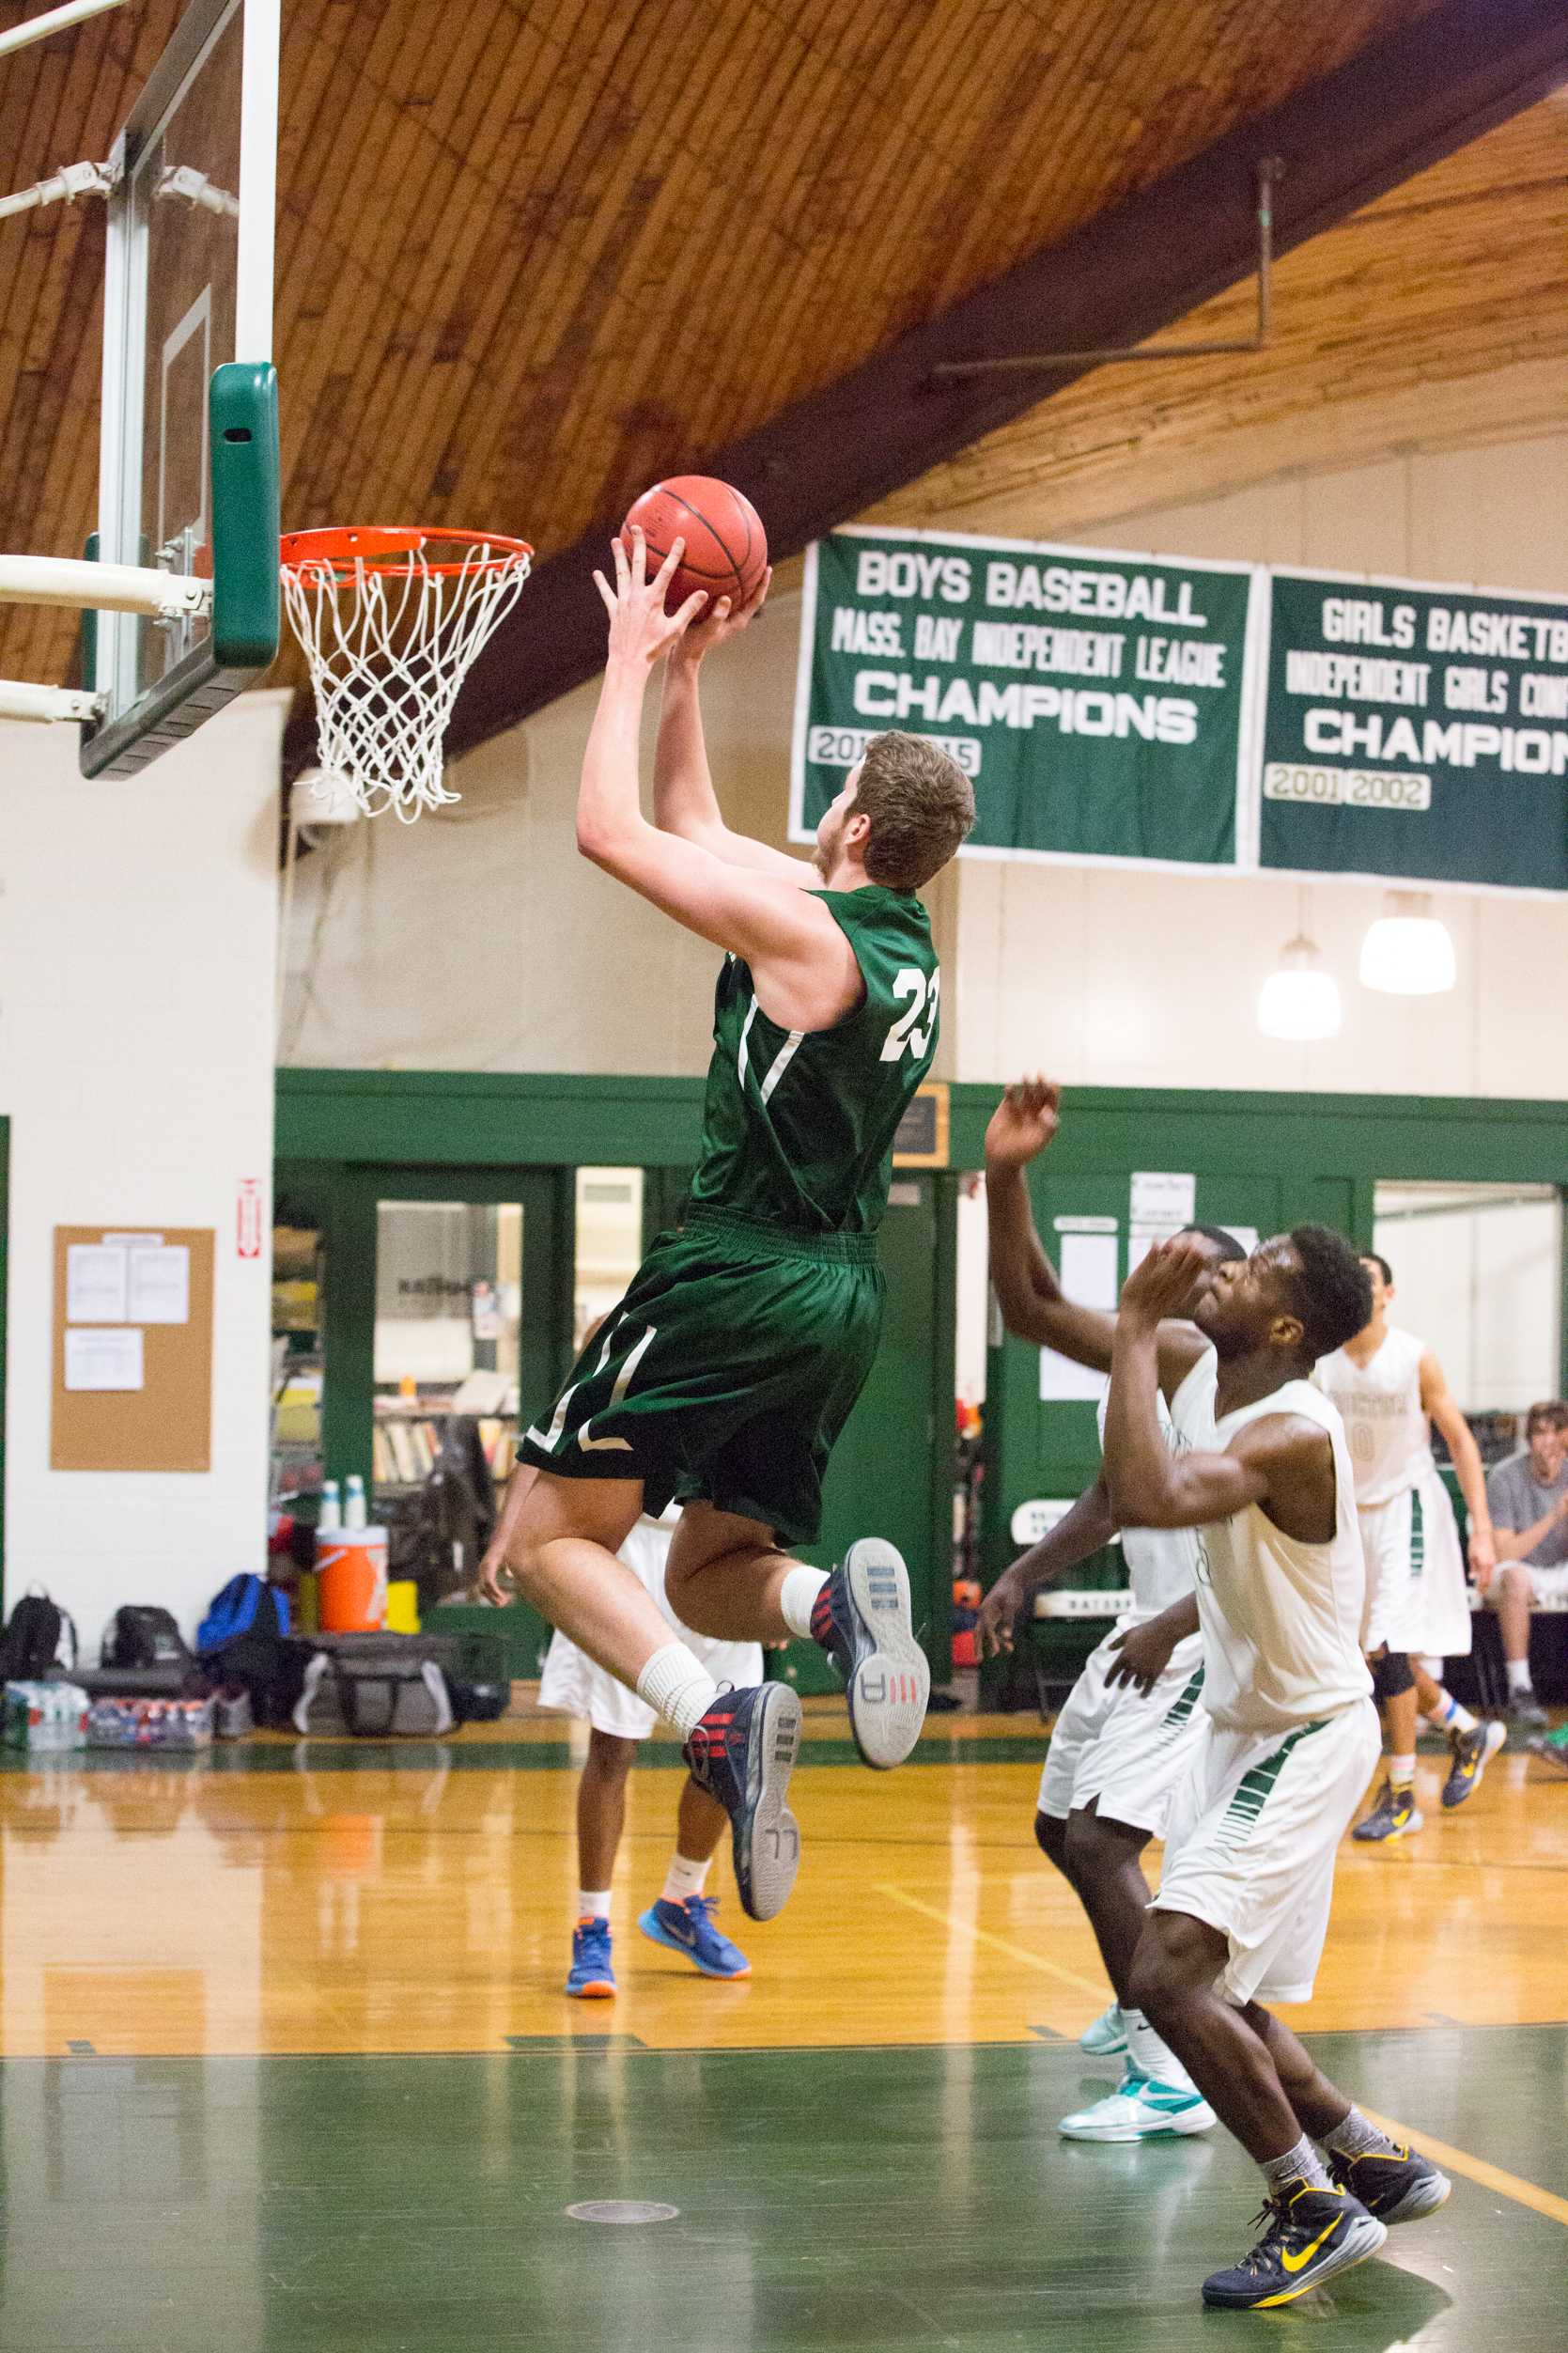 Mark Gasperini '16 goes hard to the hoop. Photo by David Barron.